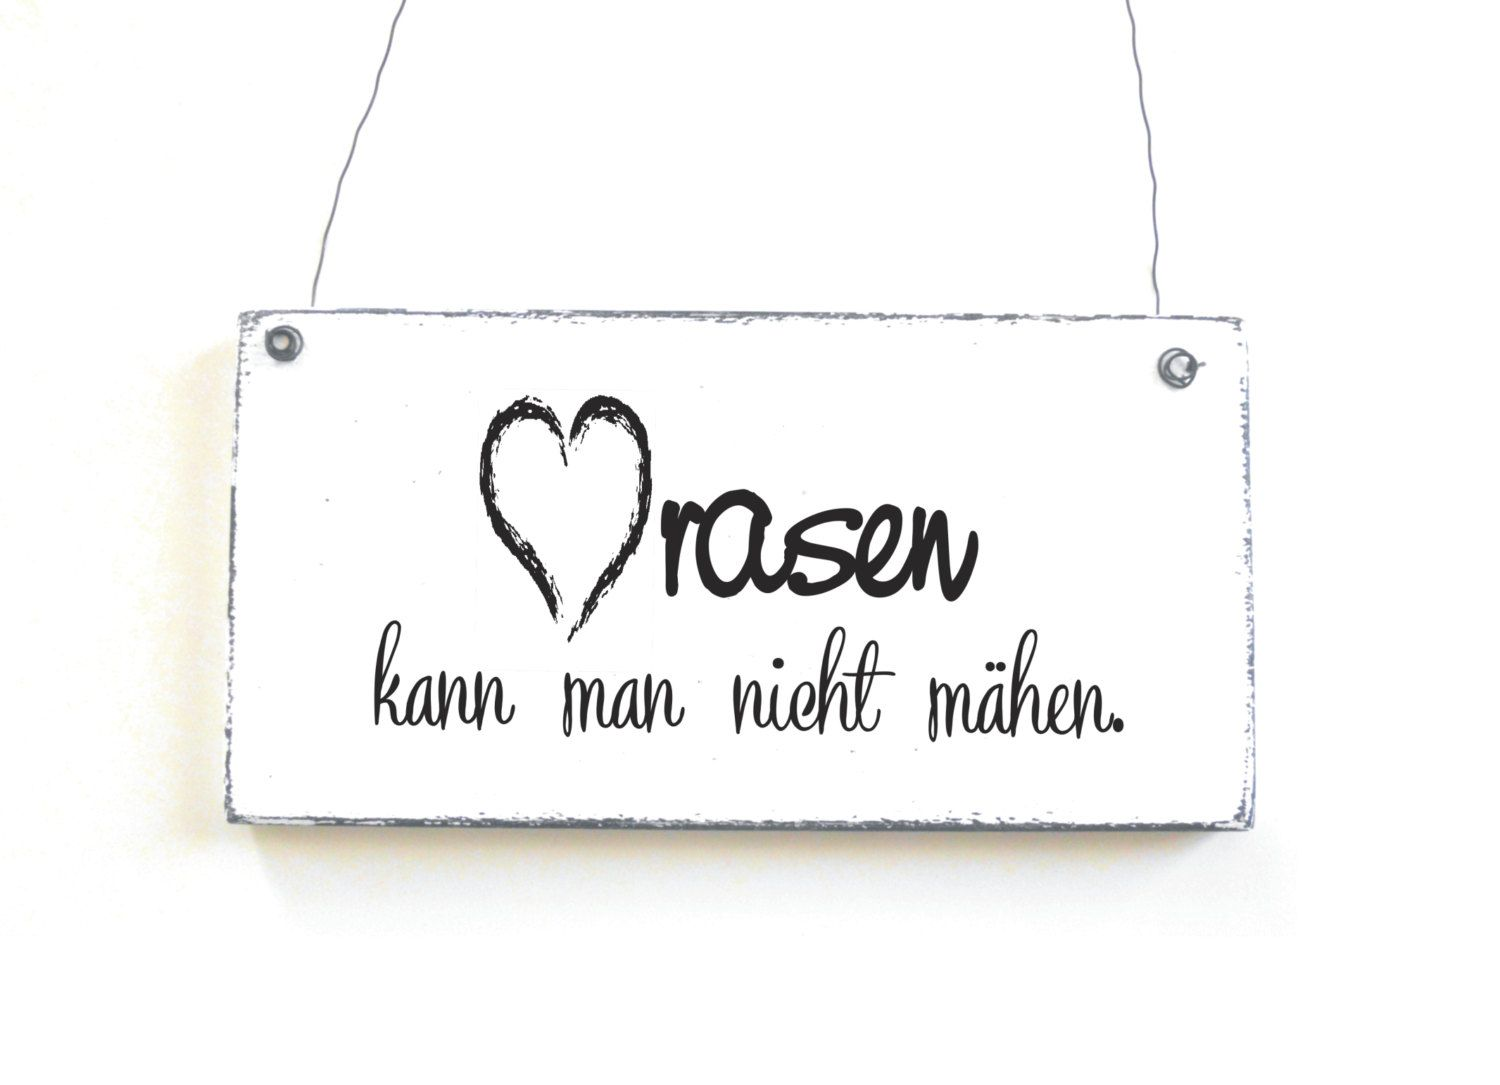 schild herzrasen dekoschild holzschild spruchschild vintage shabby chic von doerpkind auf etsy. Black Bedroom Furniture Sets. Home Design Ideas